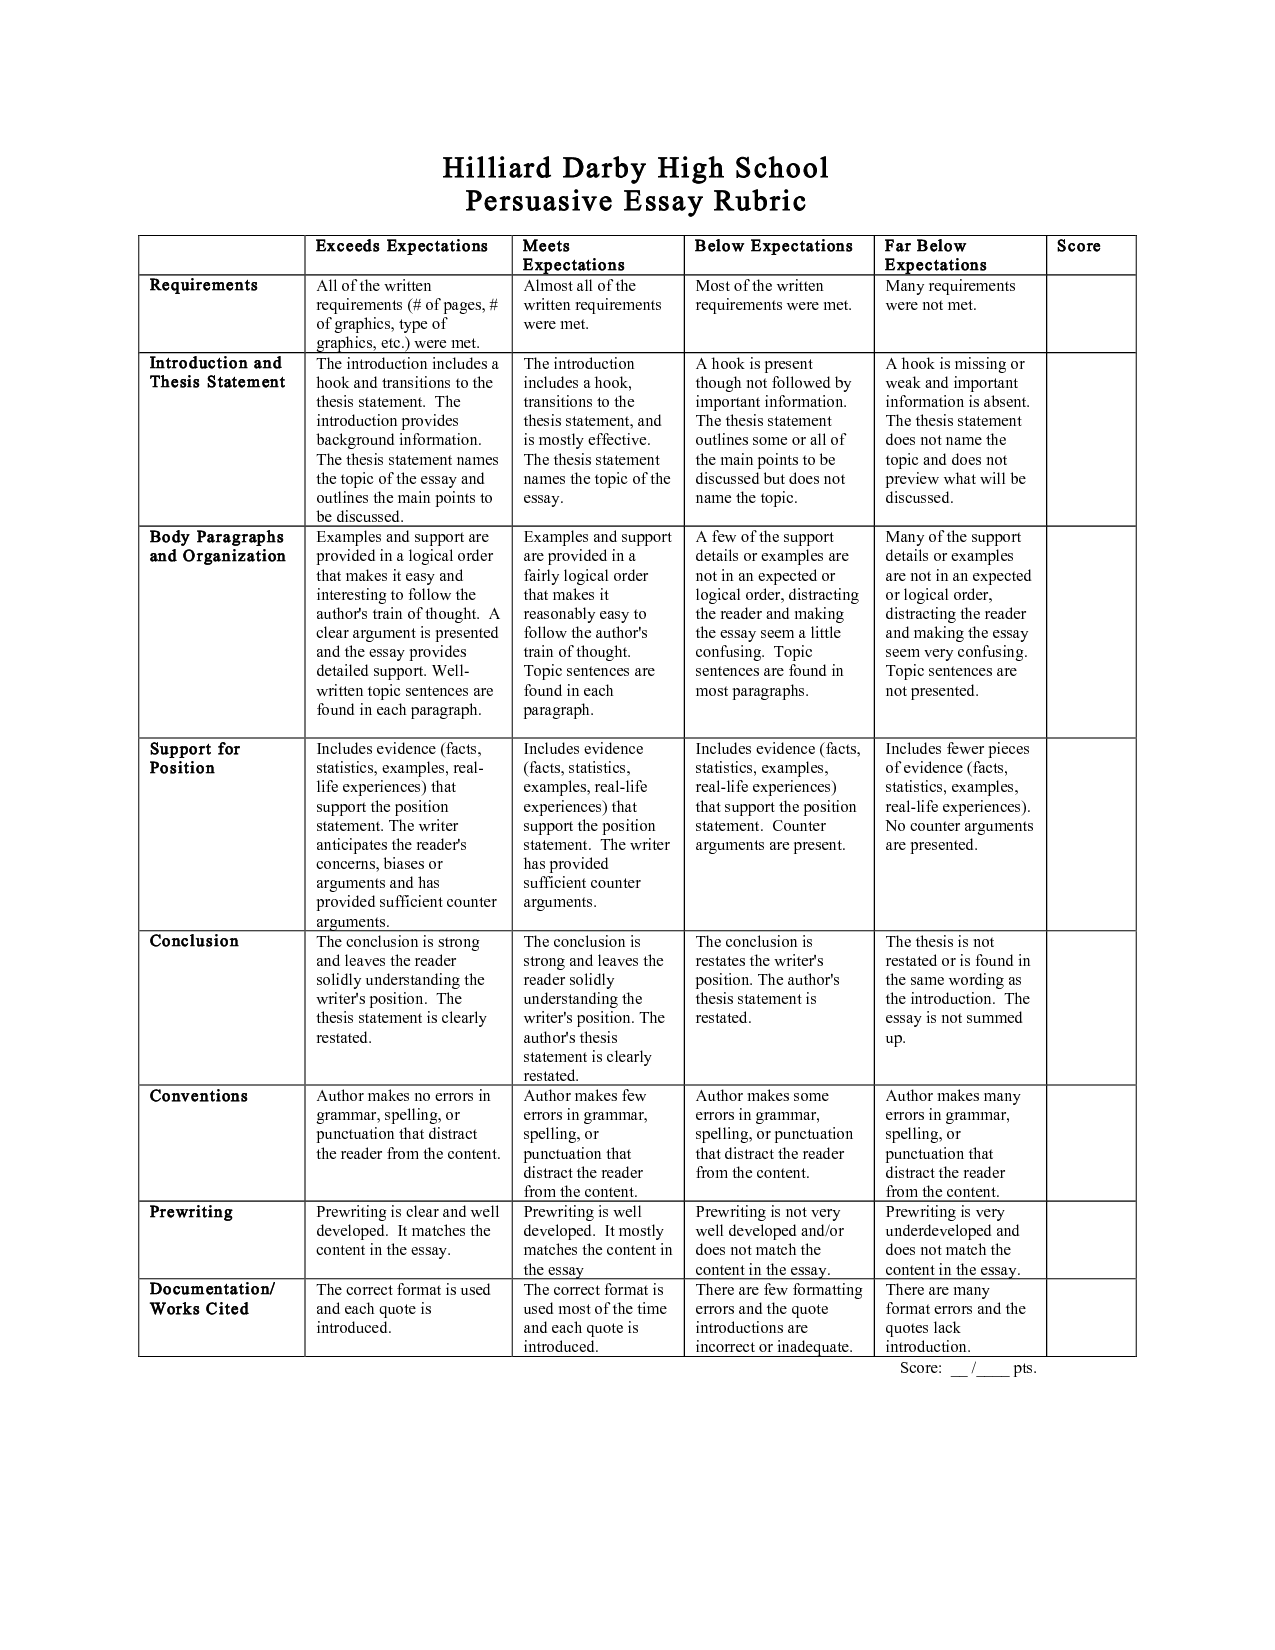 rubric for history essay high school University of wisconsin stout rubric for high school presentations historical fiction essay rubric (pdf) blake green's history class rubric.